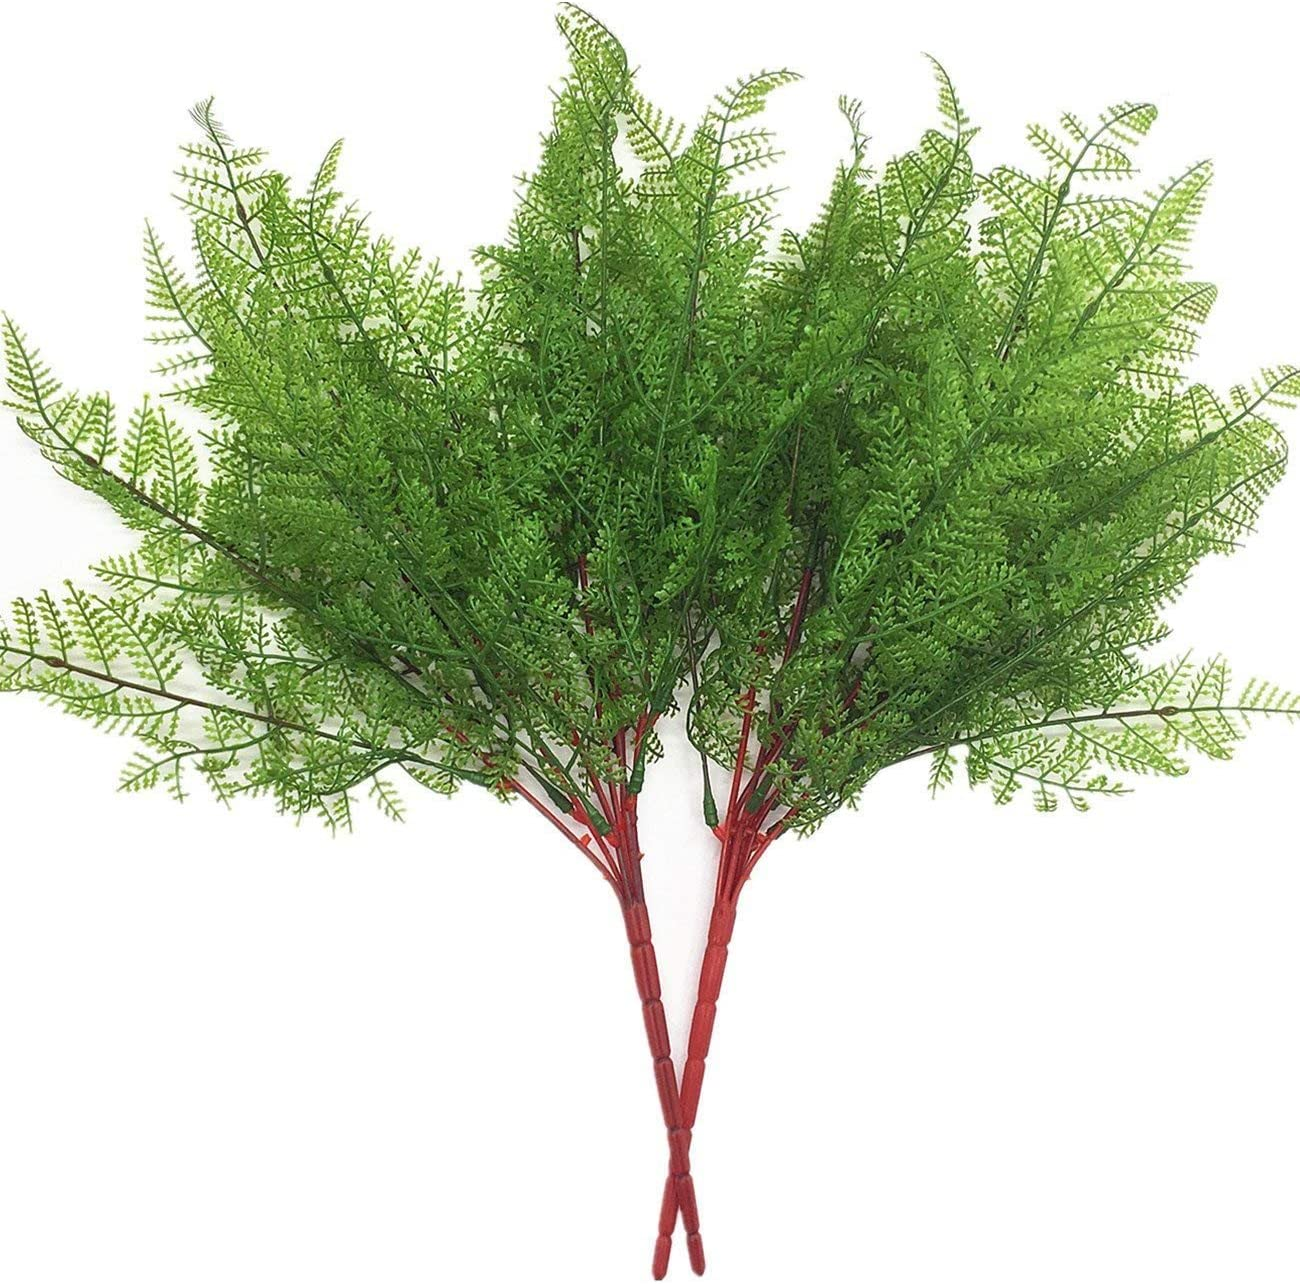 2021 model CATTREE Artificial NEW before selling ☆ Shrubs Bushes Plastic Persian Leaves Fern Gr